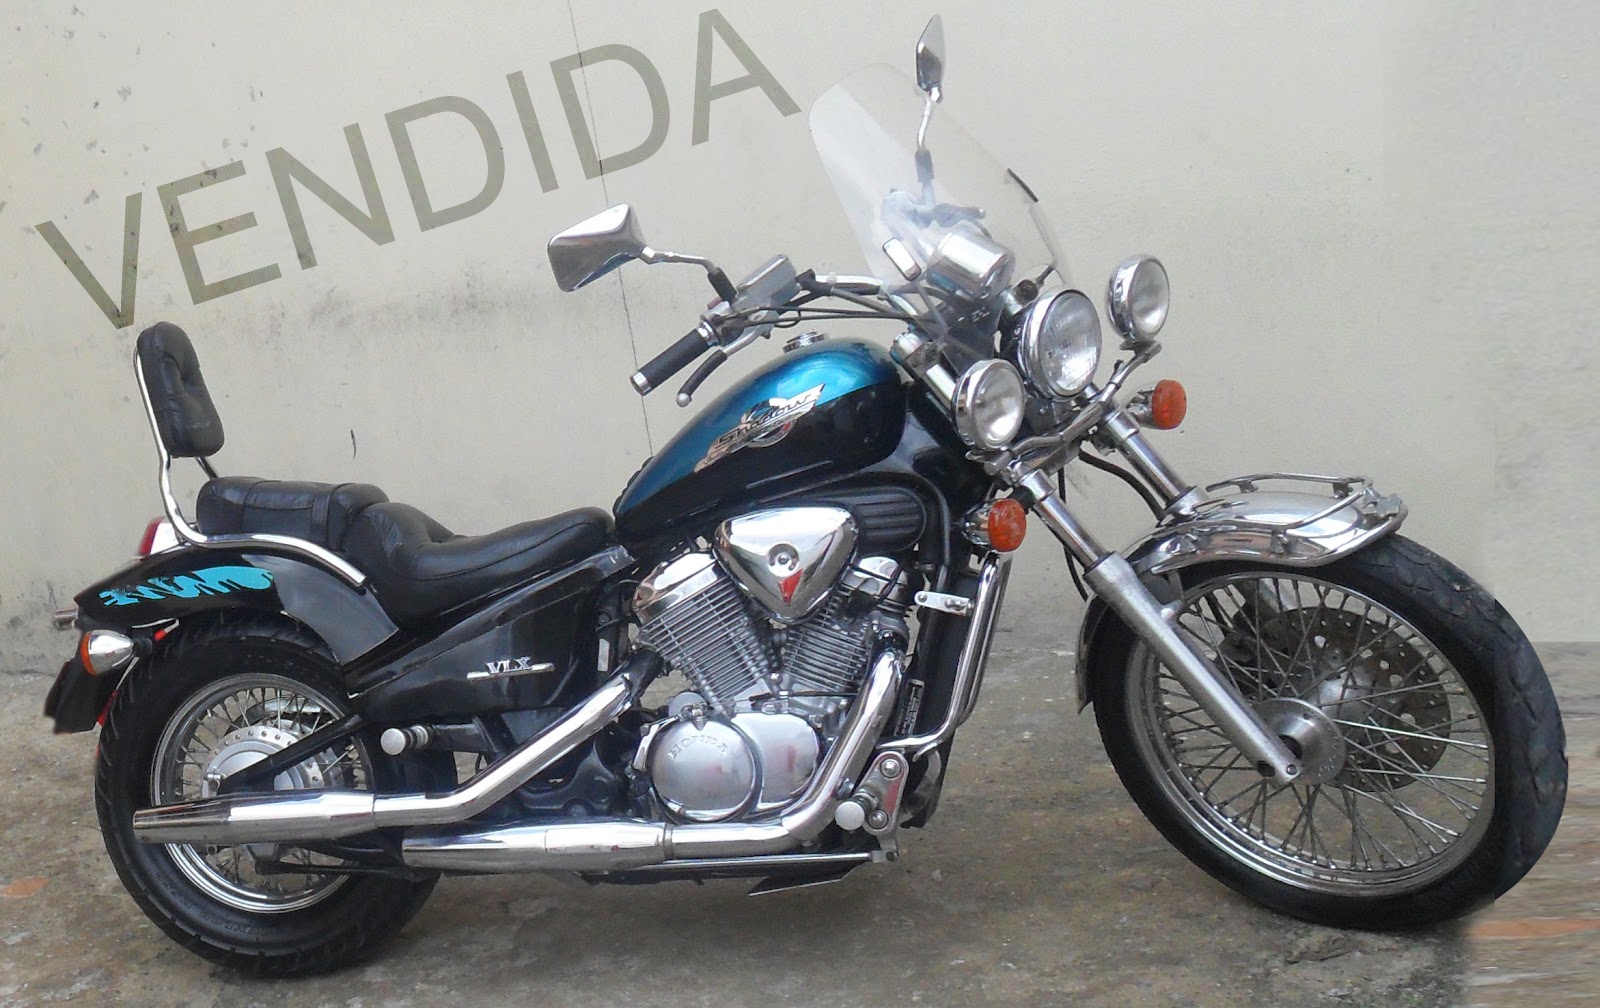 Jc 1300 Lunar  Honda Shadow 600 99 Vlx  U00e0 Venda